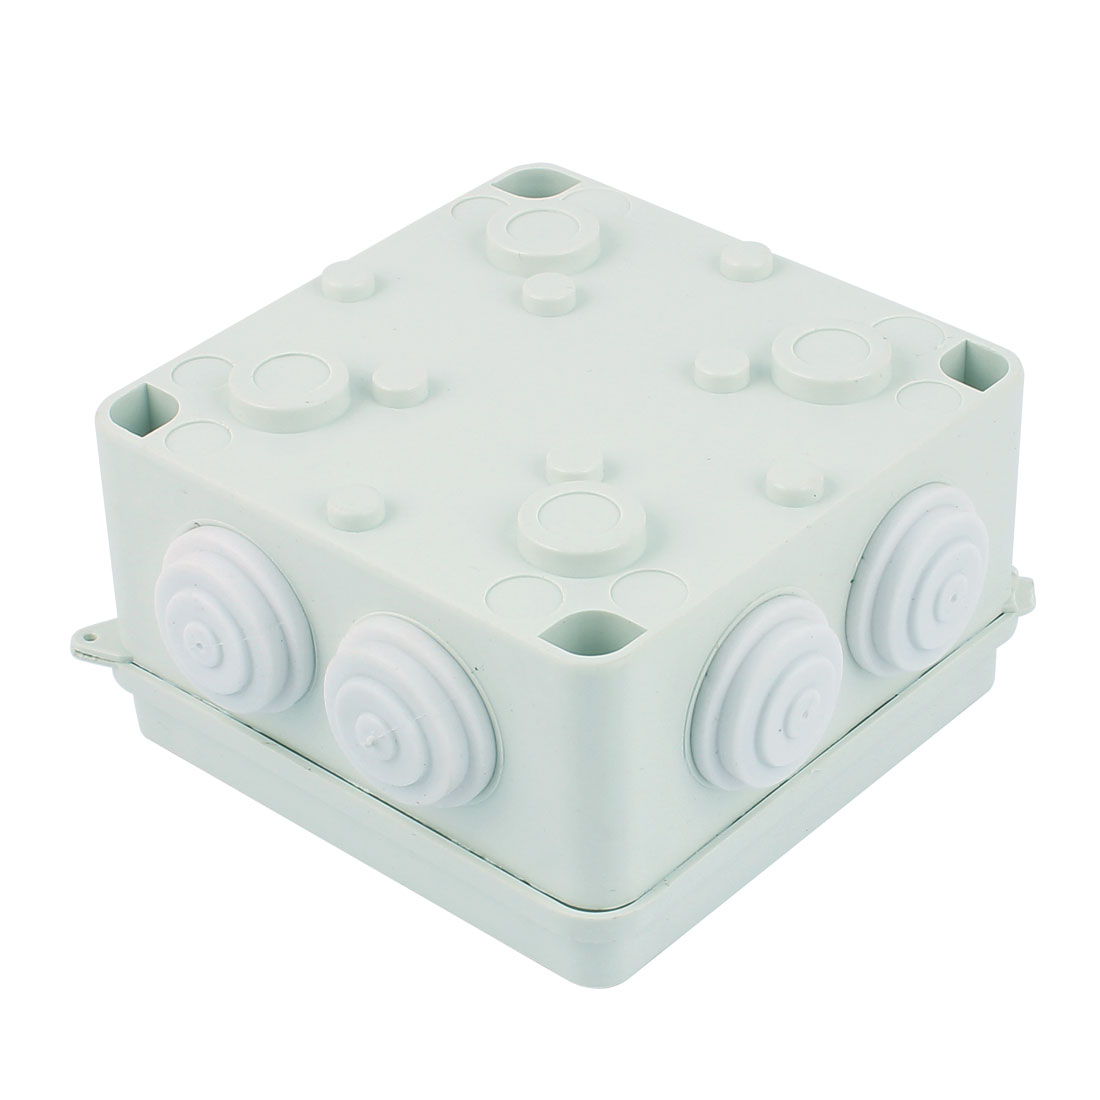 White ABS 7 Cable Entries Dustproof IP65 Square Junction Box 100x100x70mm